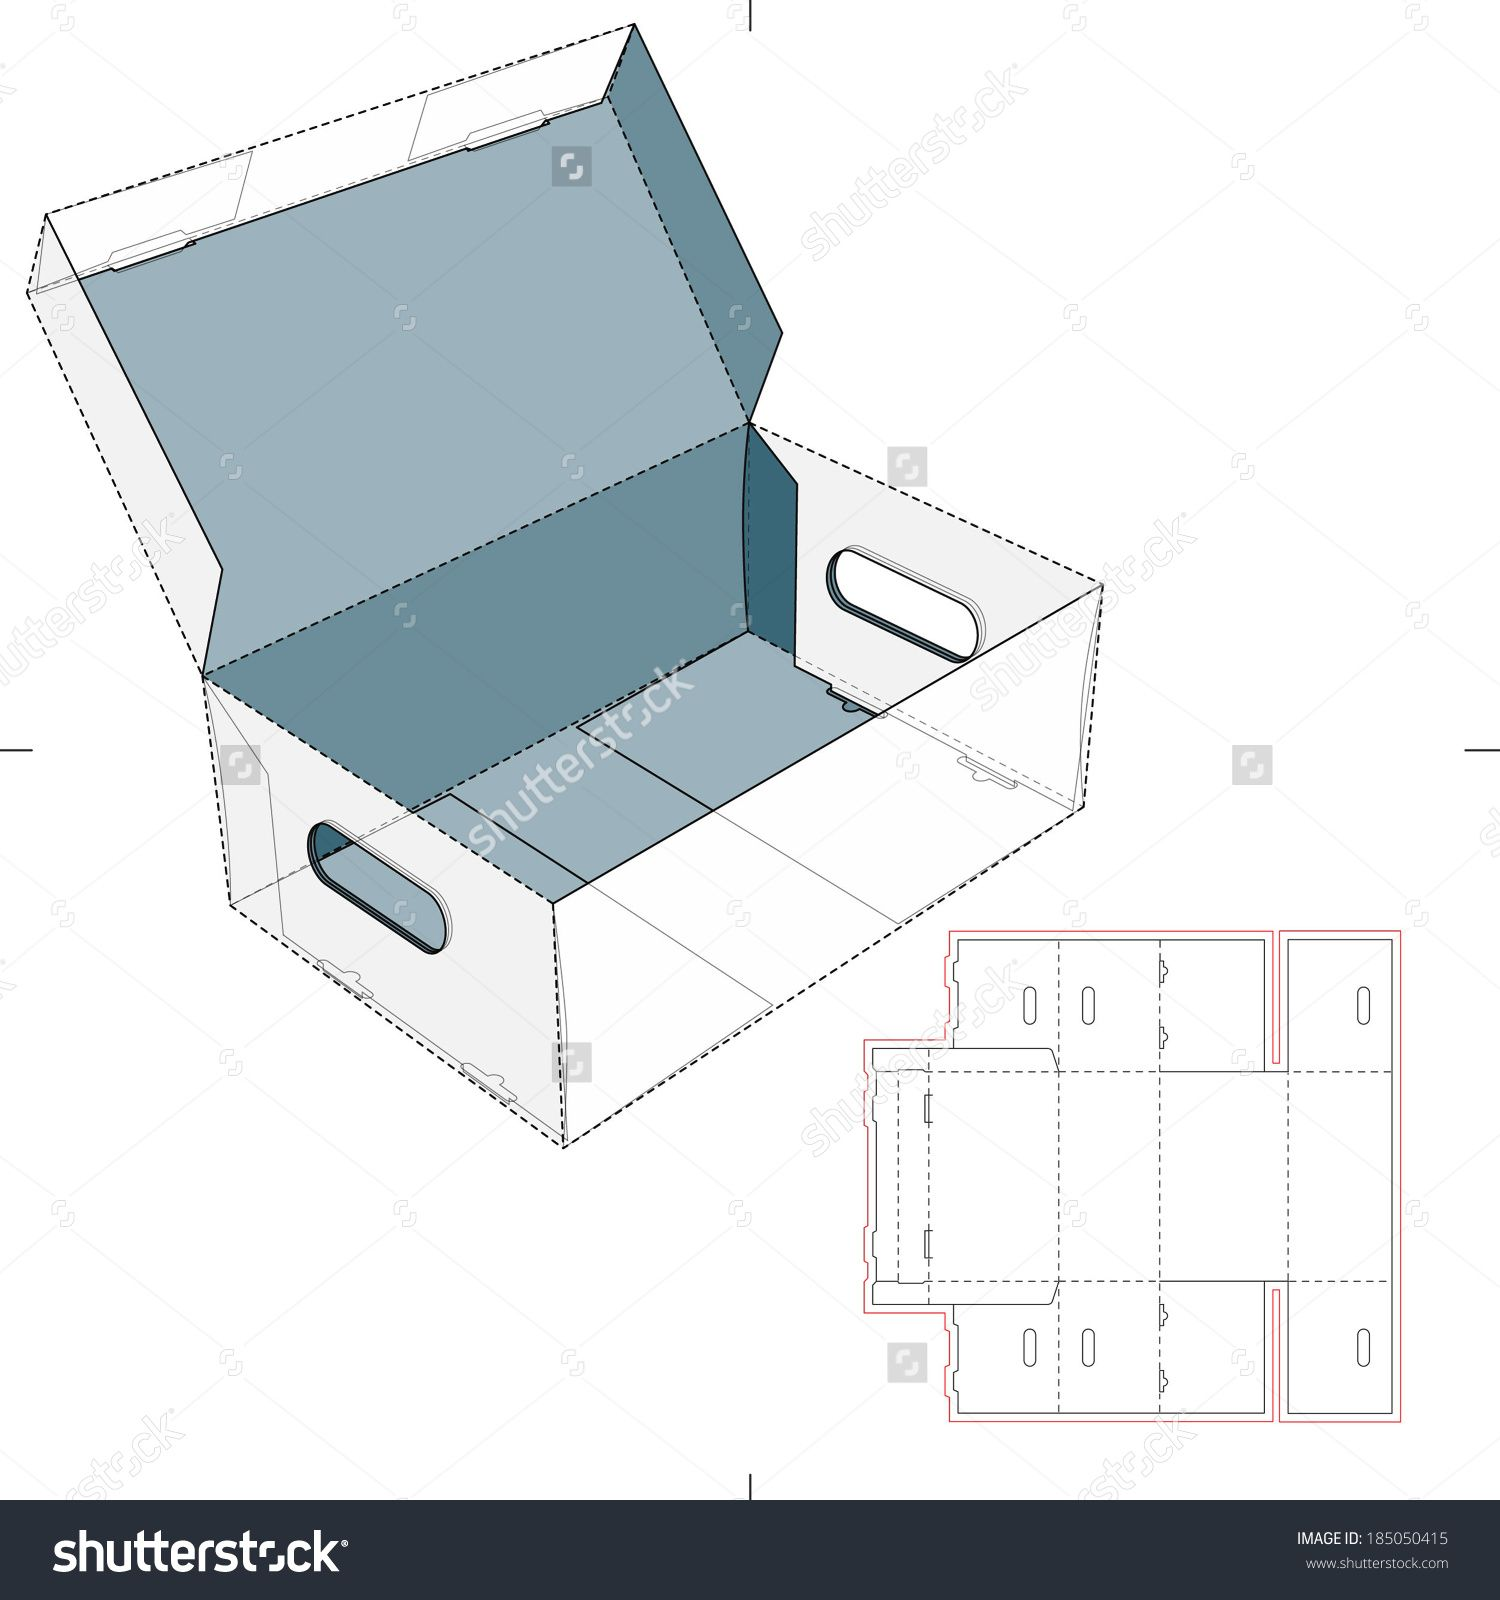 Pin On Vector Boxes And Packaging Templates With Dielines